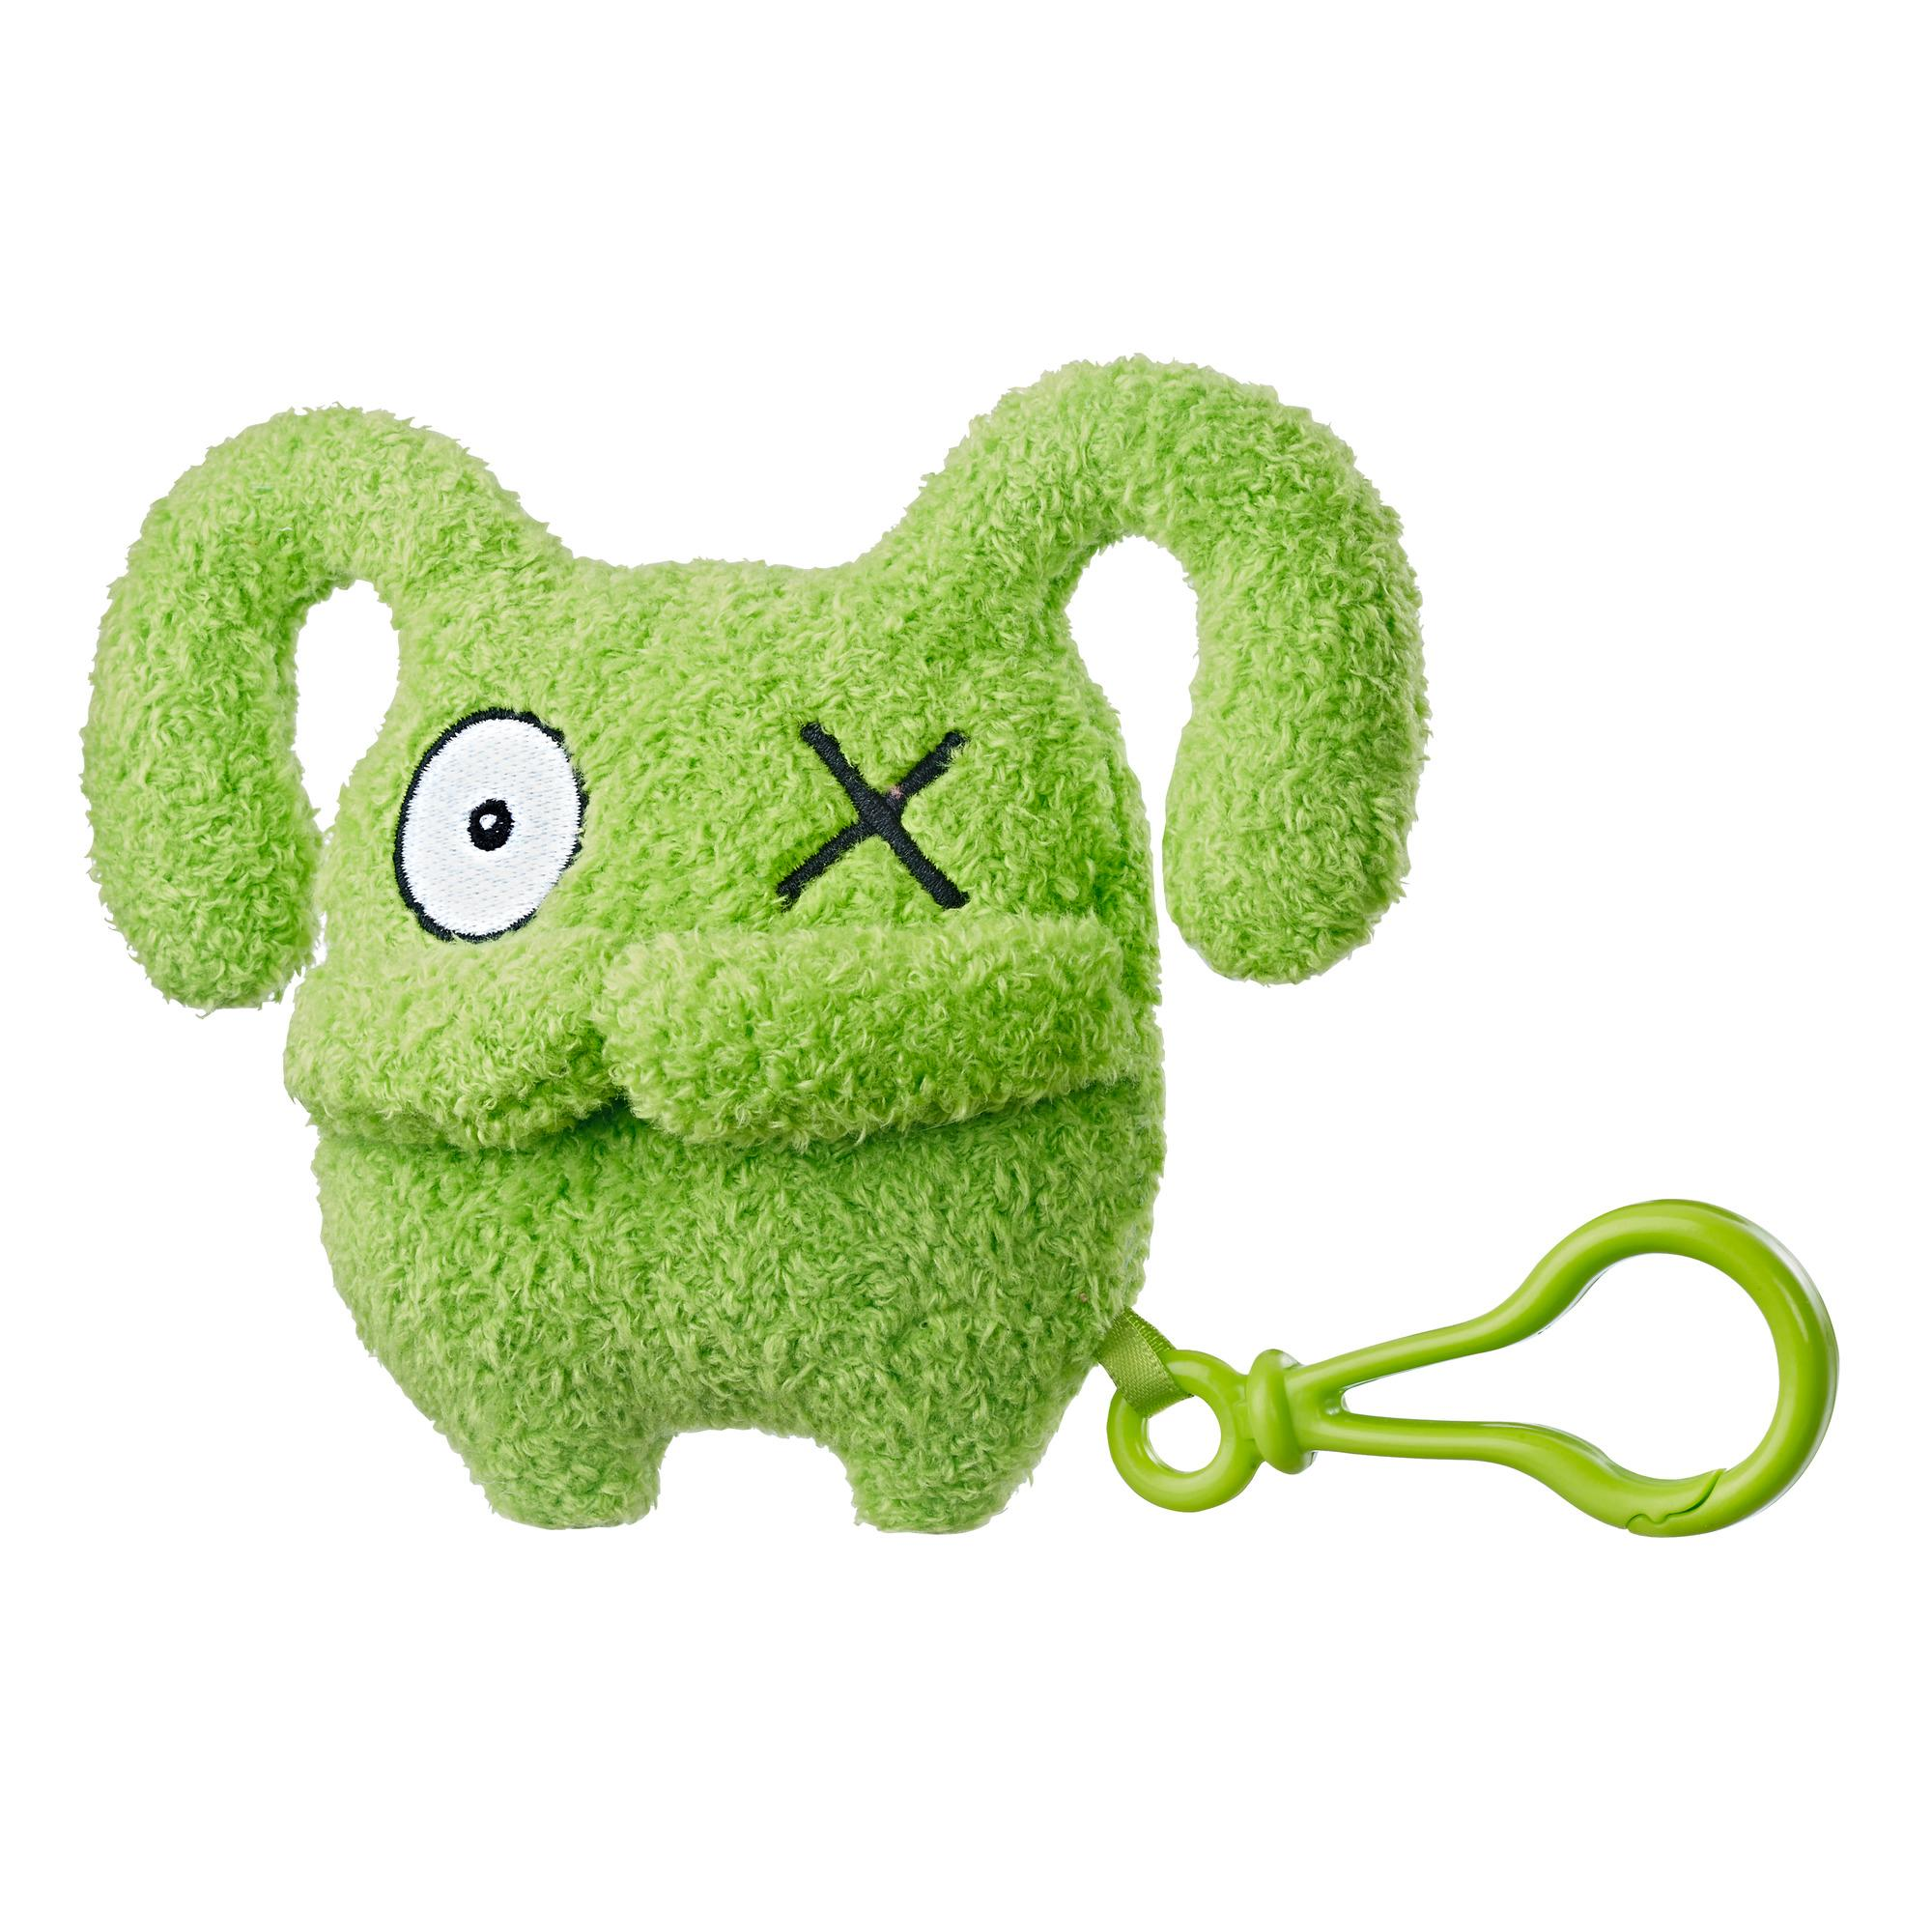 UglyDolls OX To-Go Stuffed Plush Toy, 12,5 cm. tall